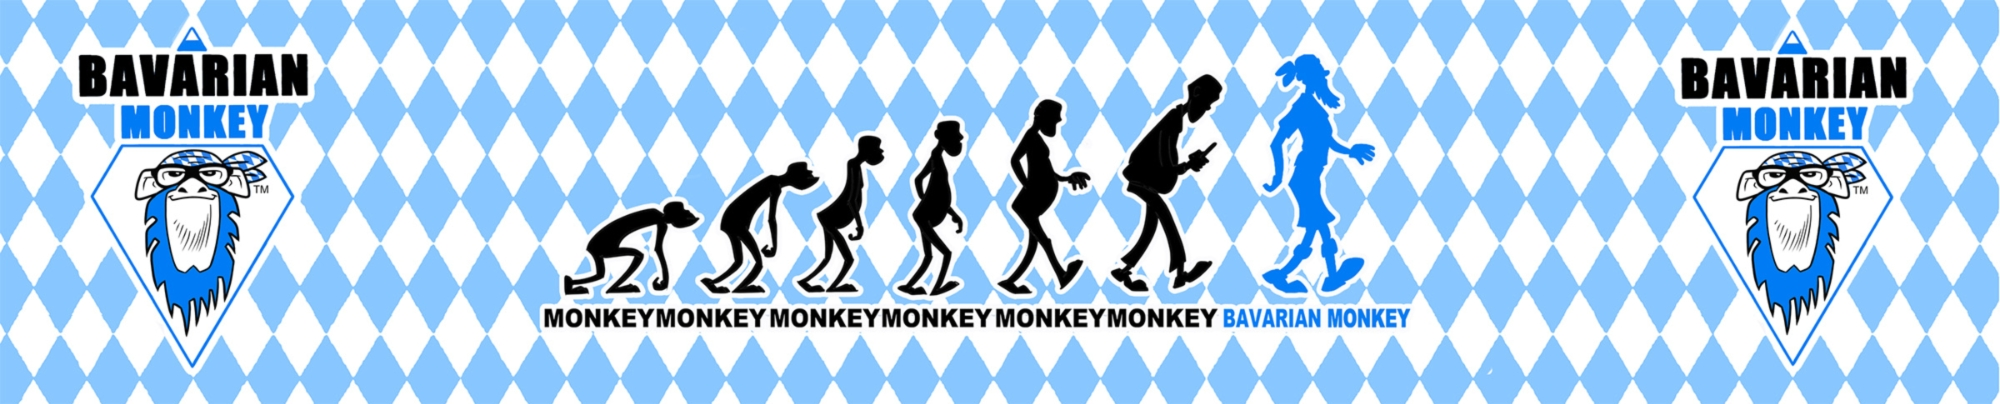 Showroom - Bavarian Monkey